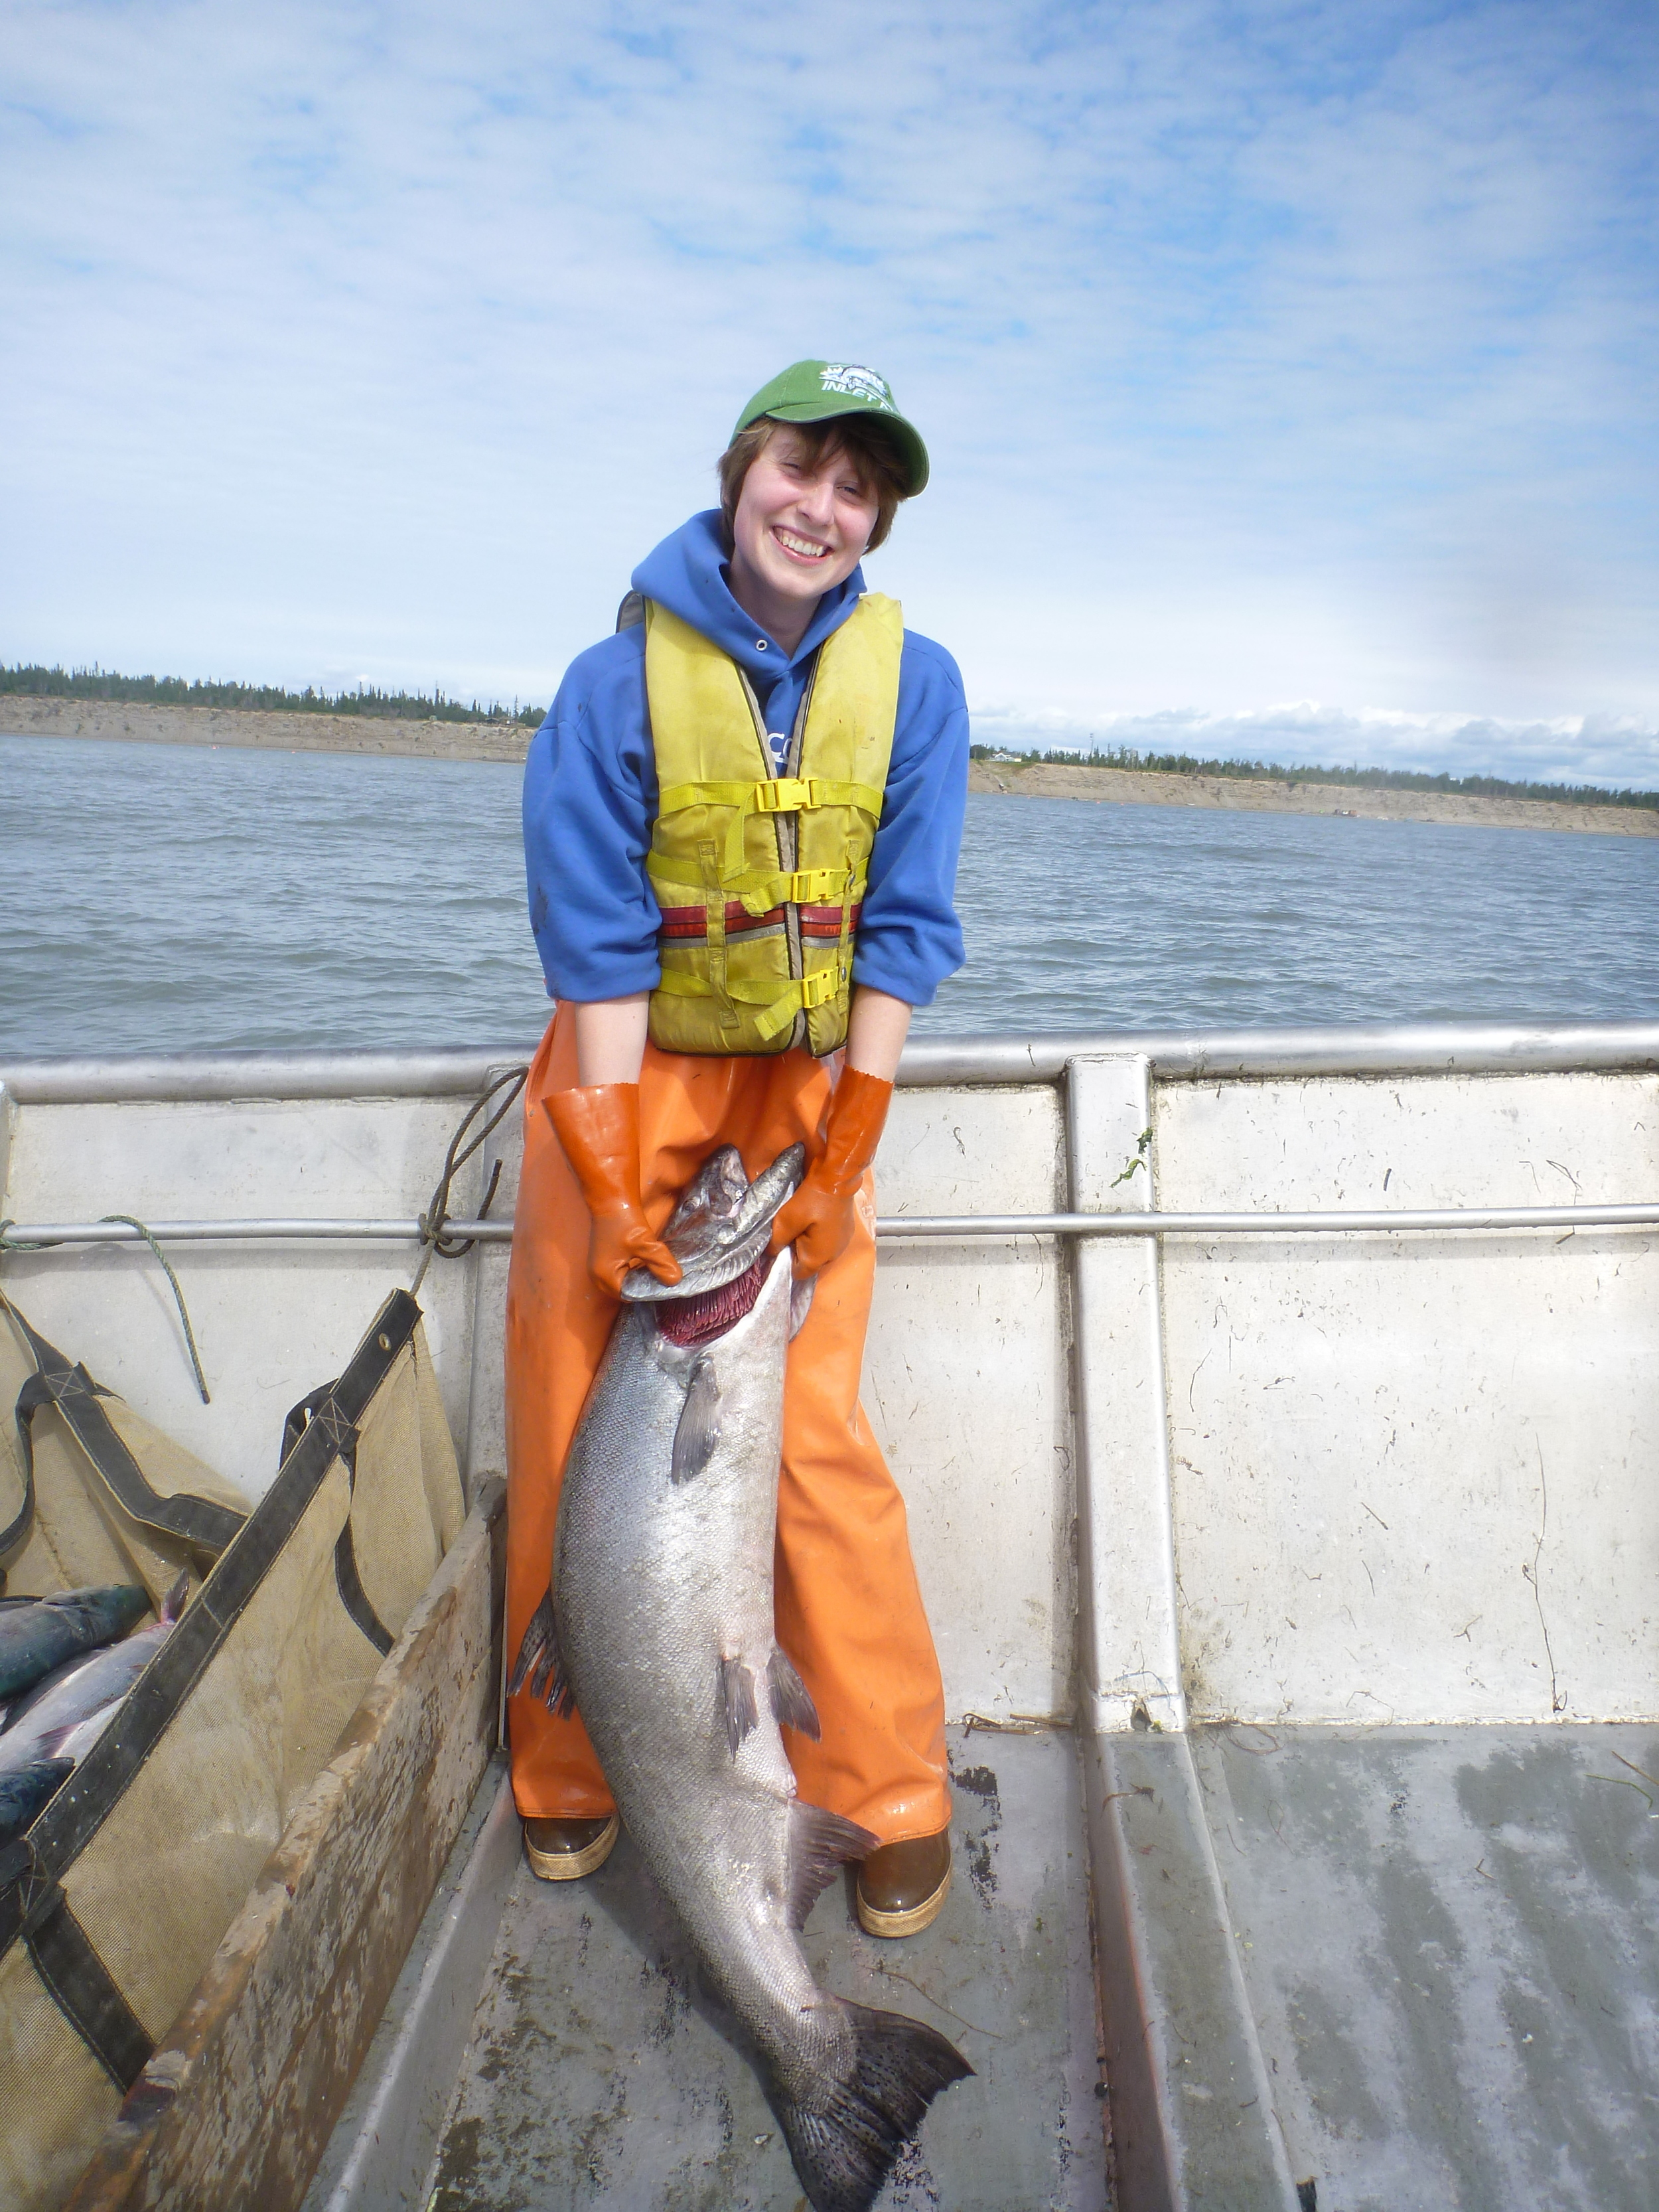 Hannah Harrison, my collaborator on much of this work, with a king salmon caught at her uncle's set-net site.